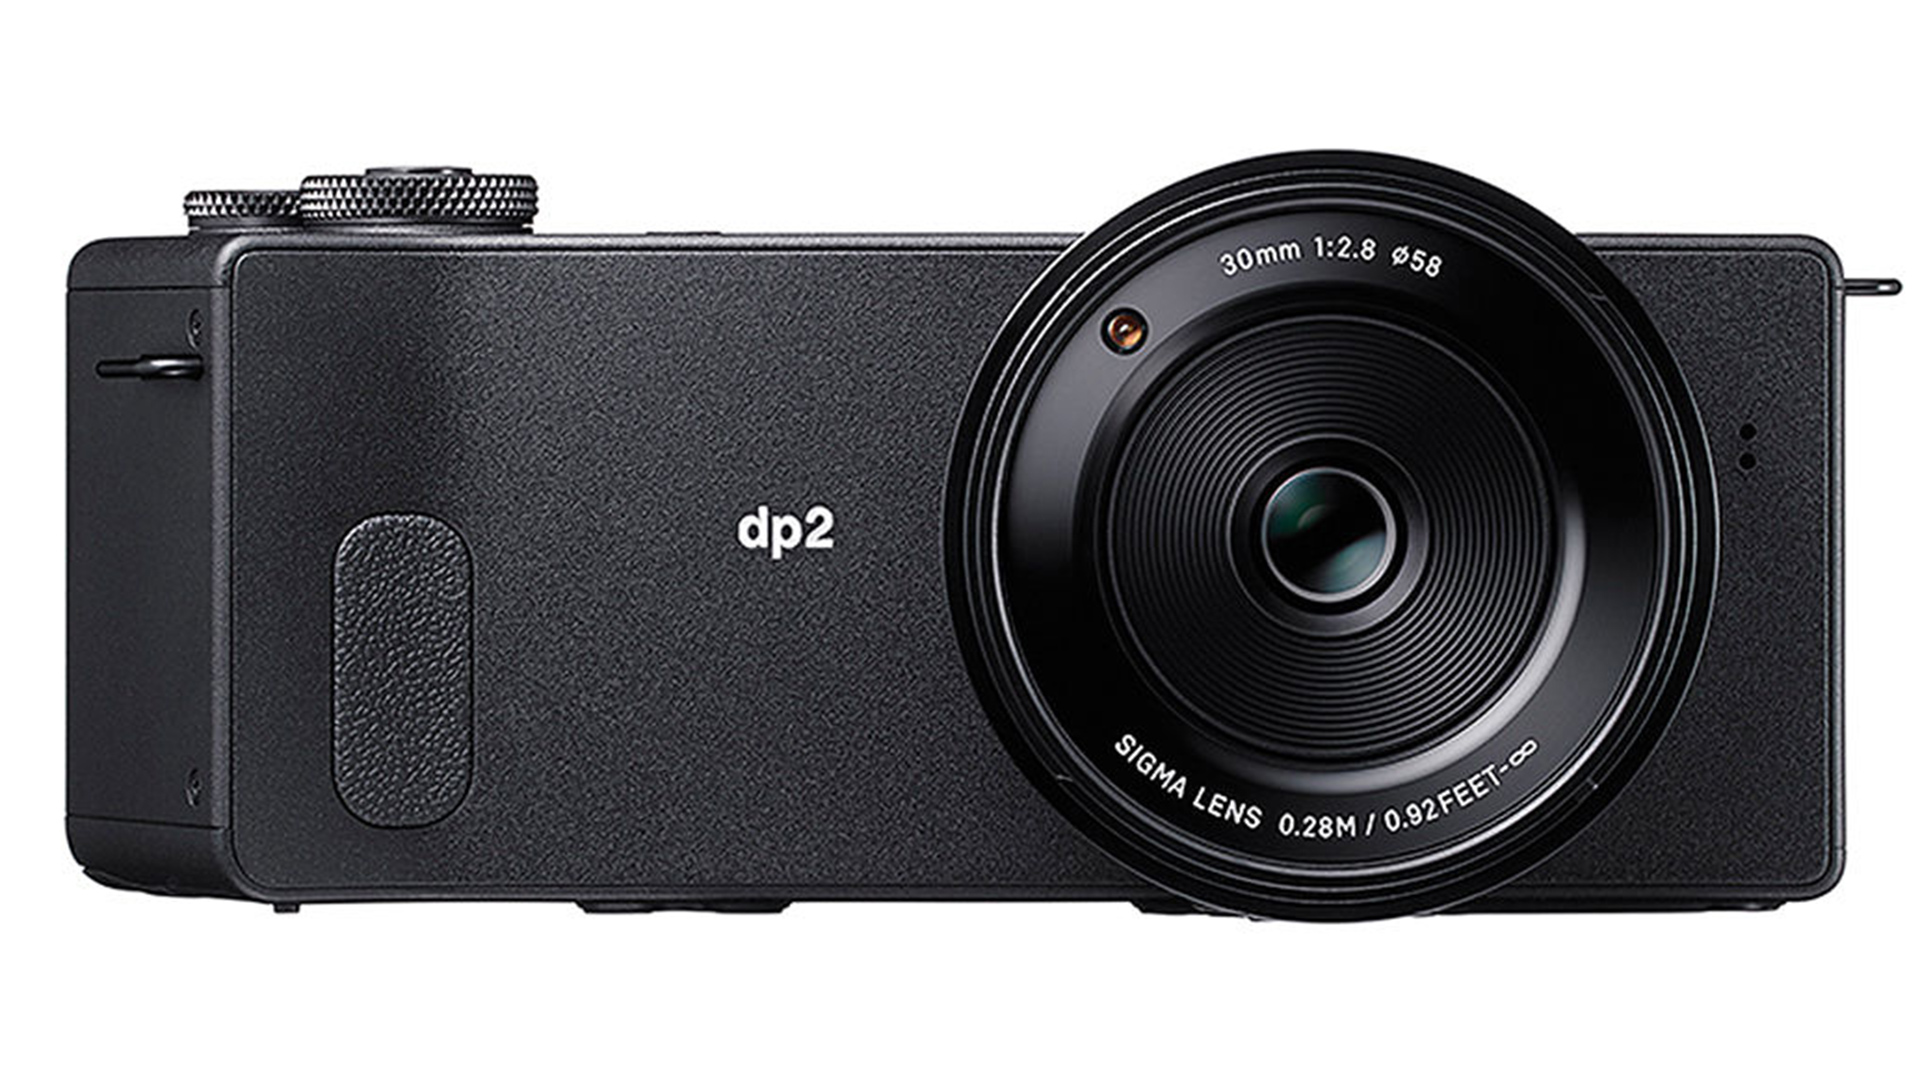 The Sigma DP2 uses the Foveon X3 sensor